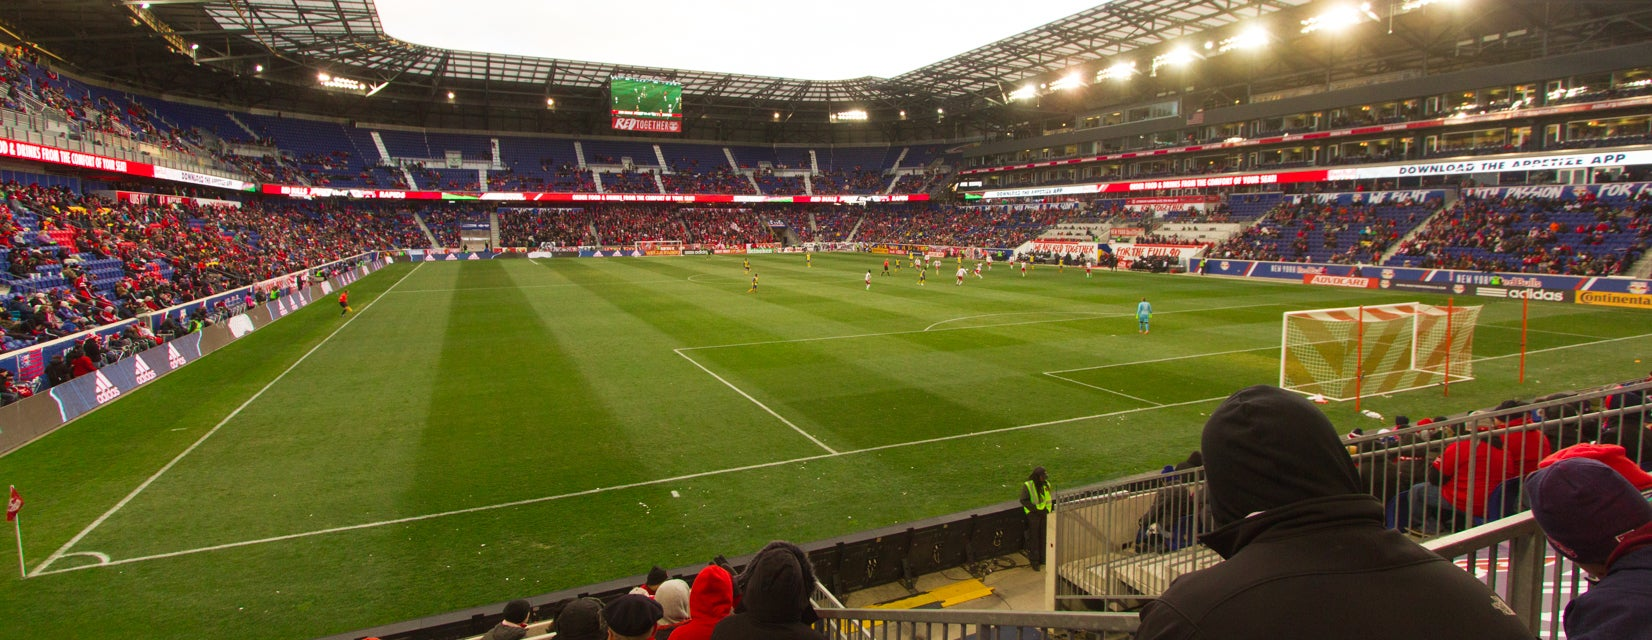 Seat view from Zone Six